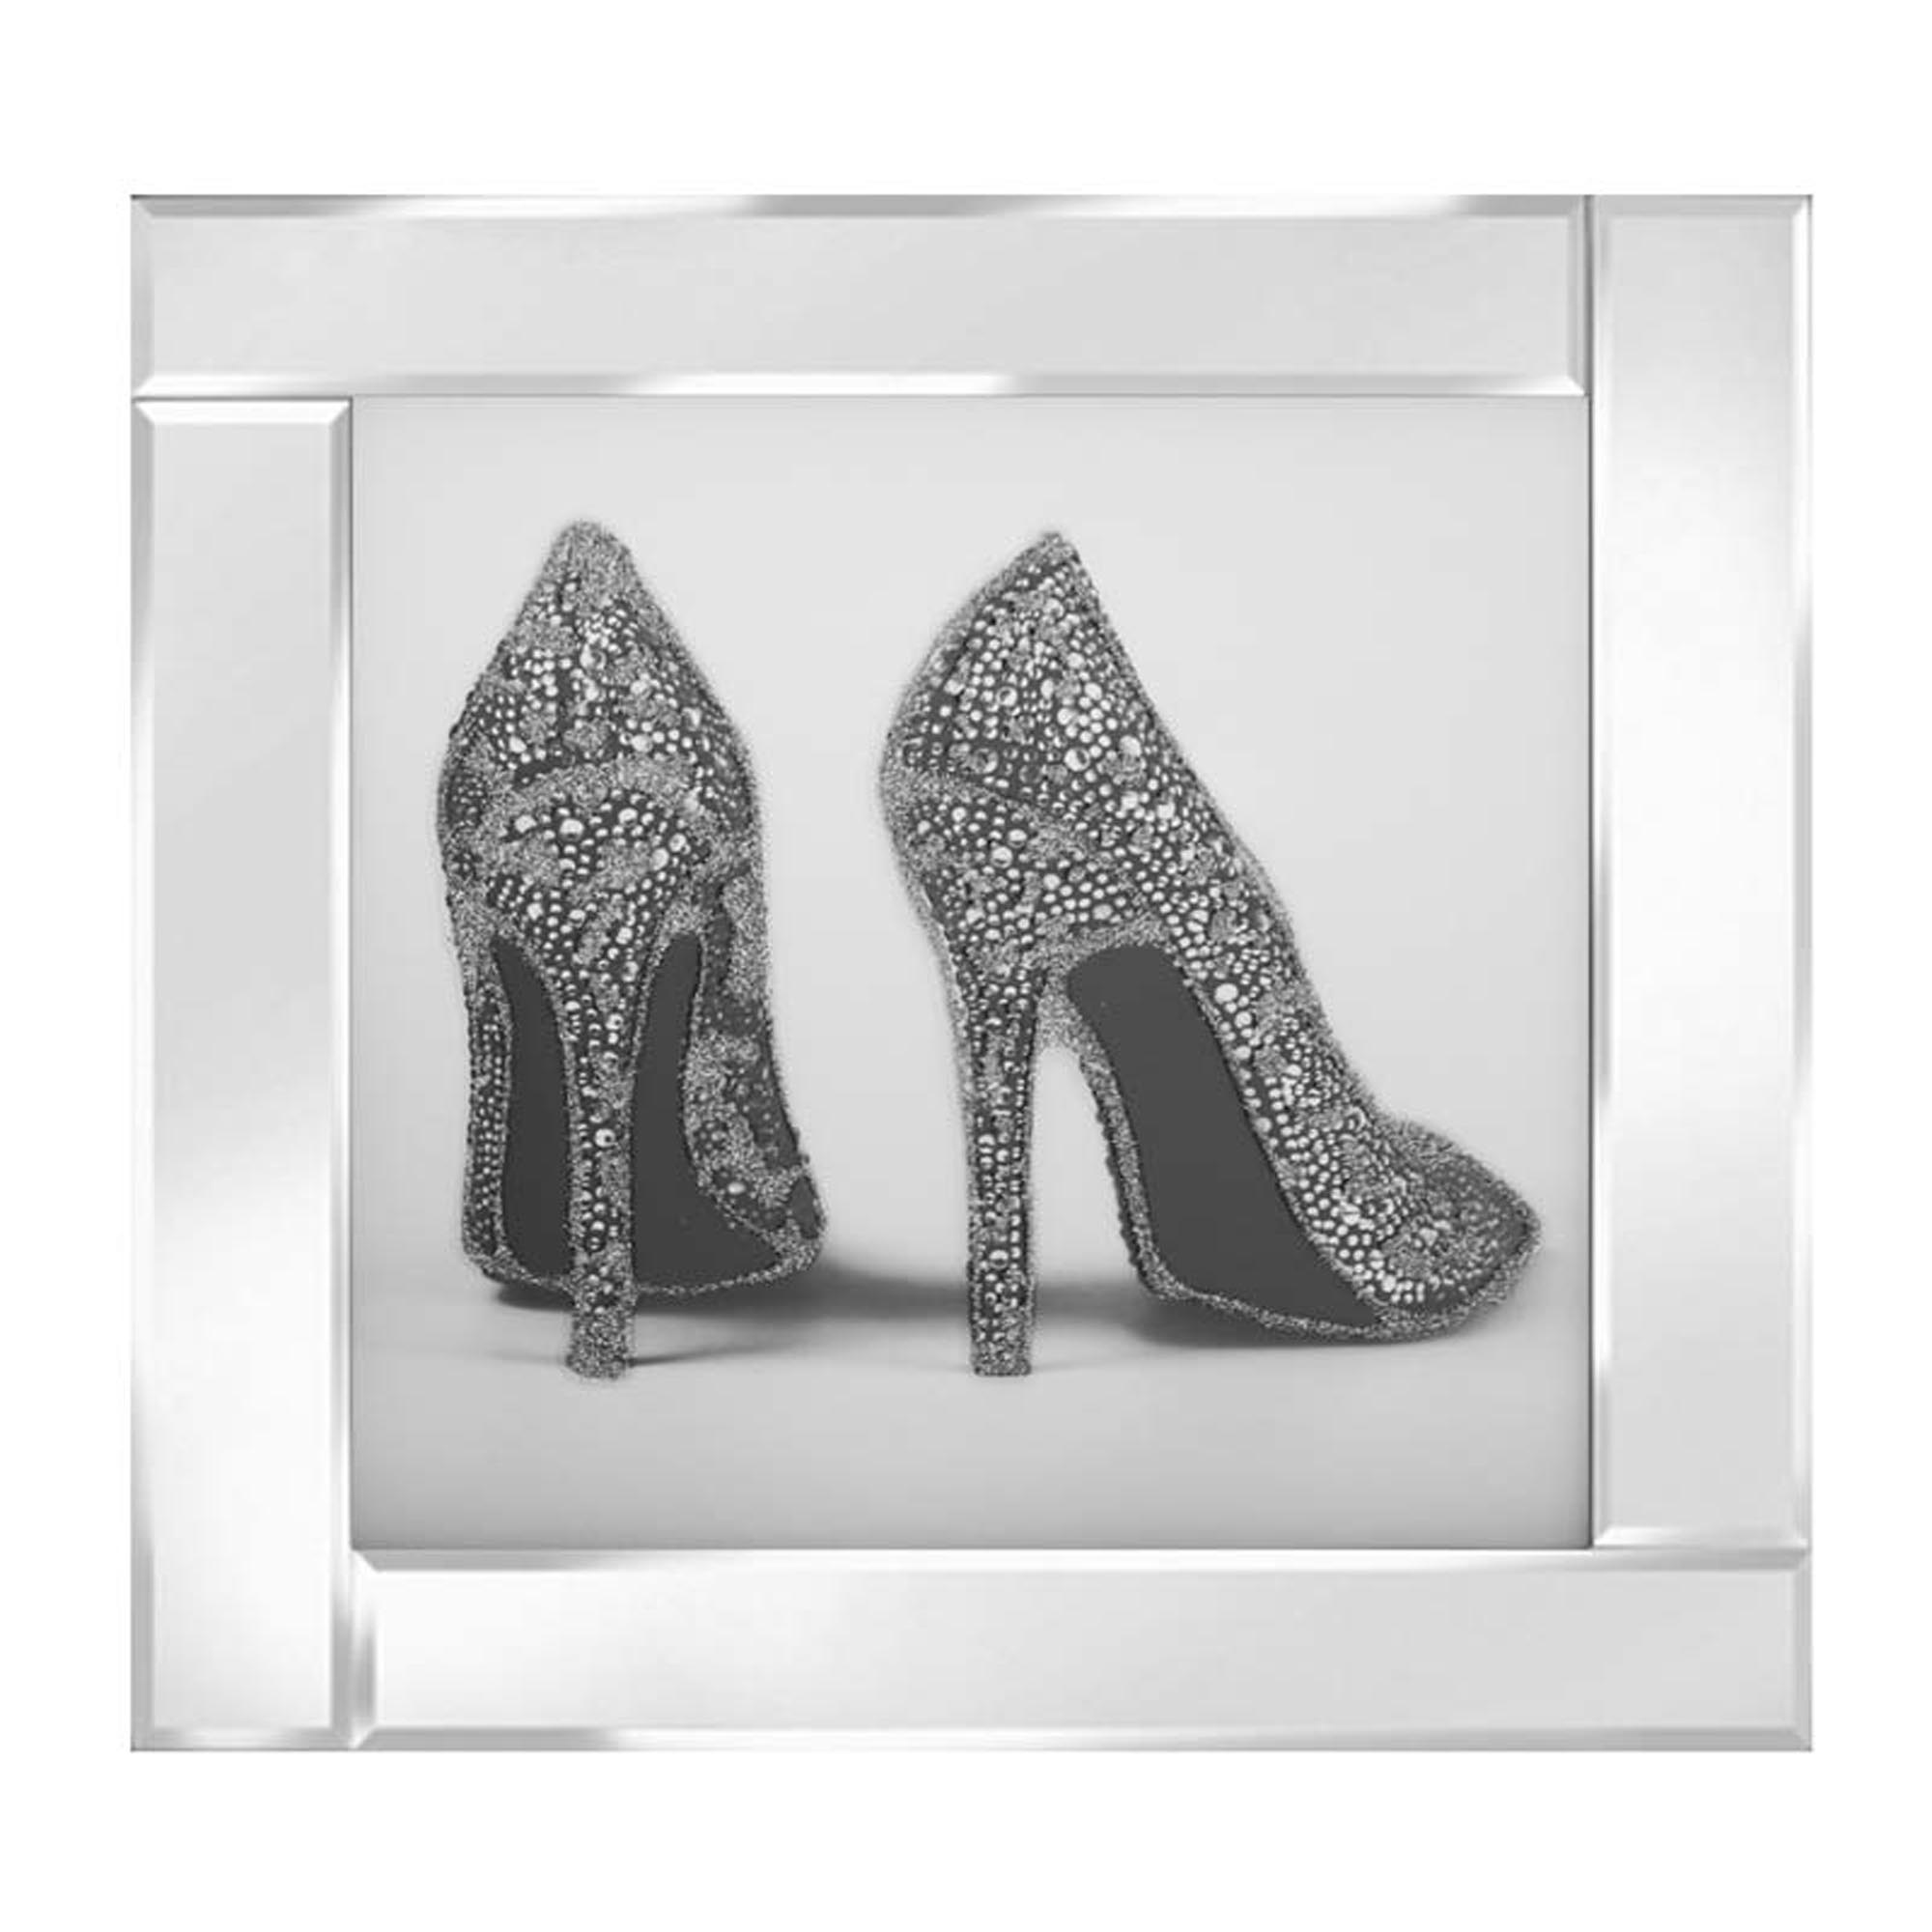 Silver Glitter Shoes   Home Accessories